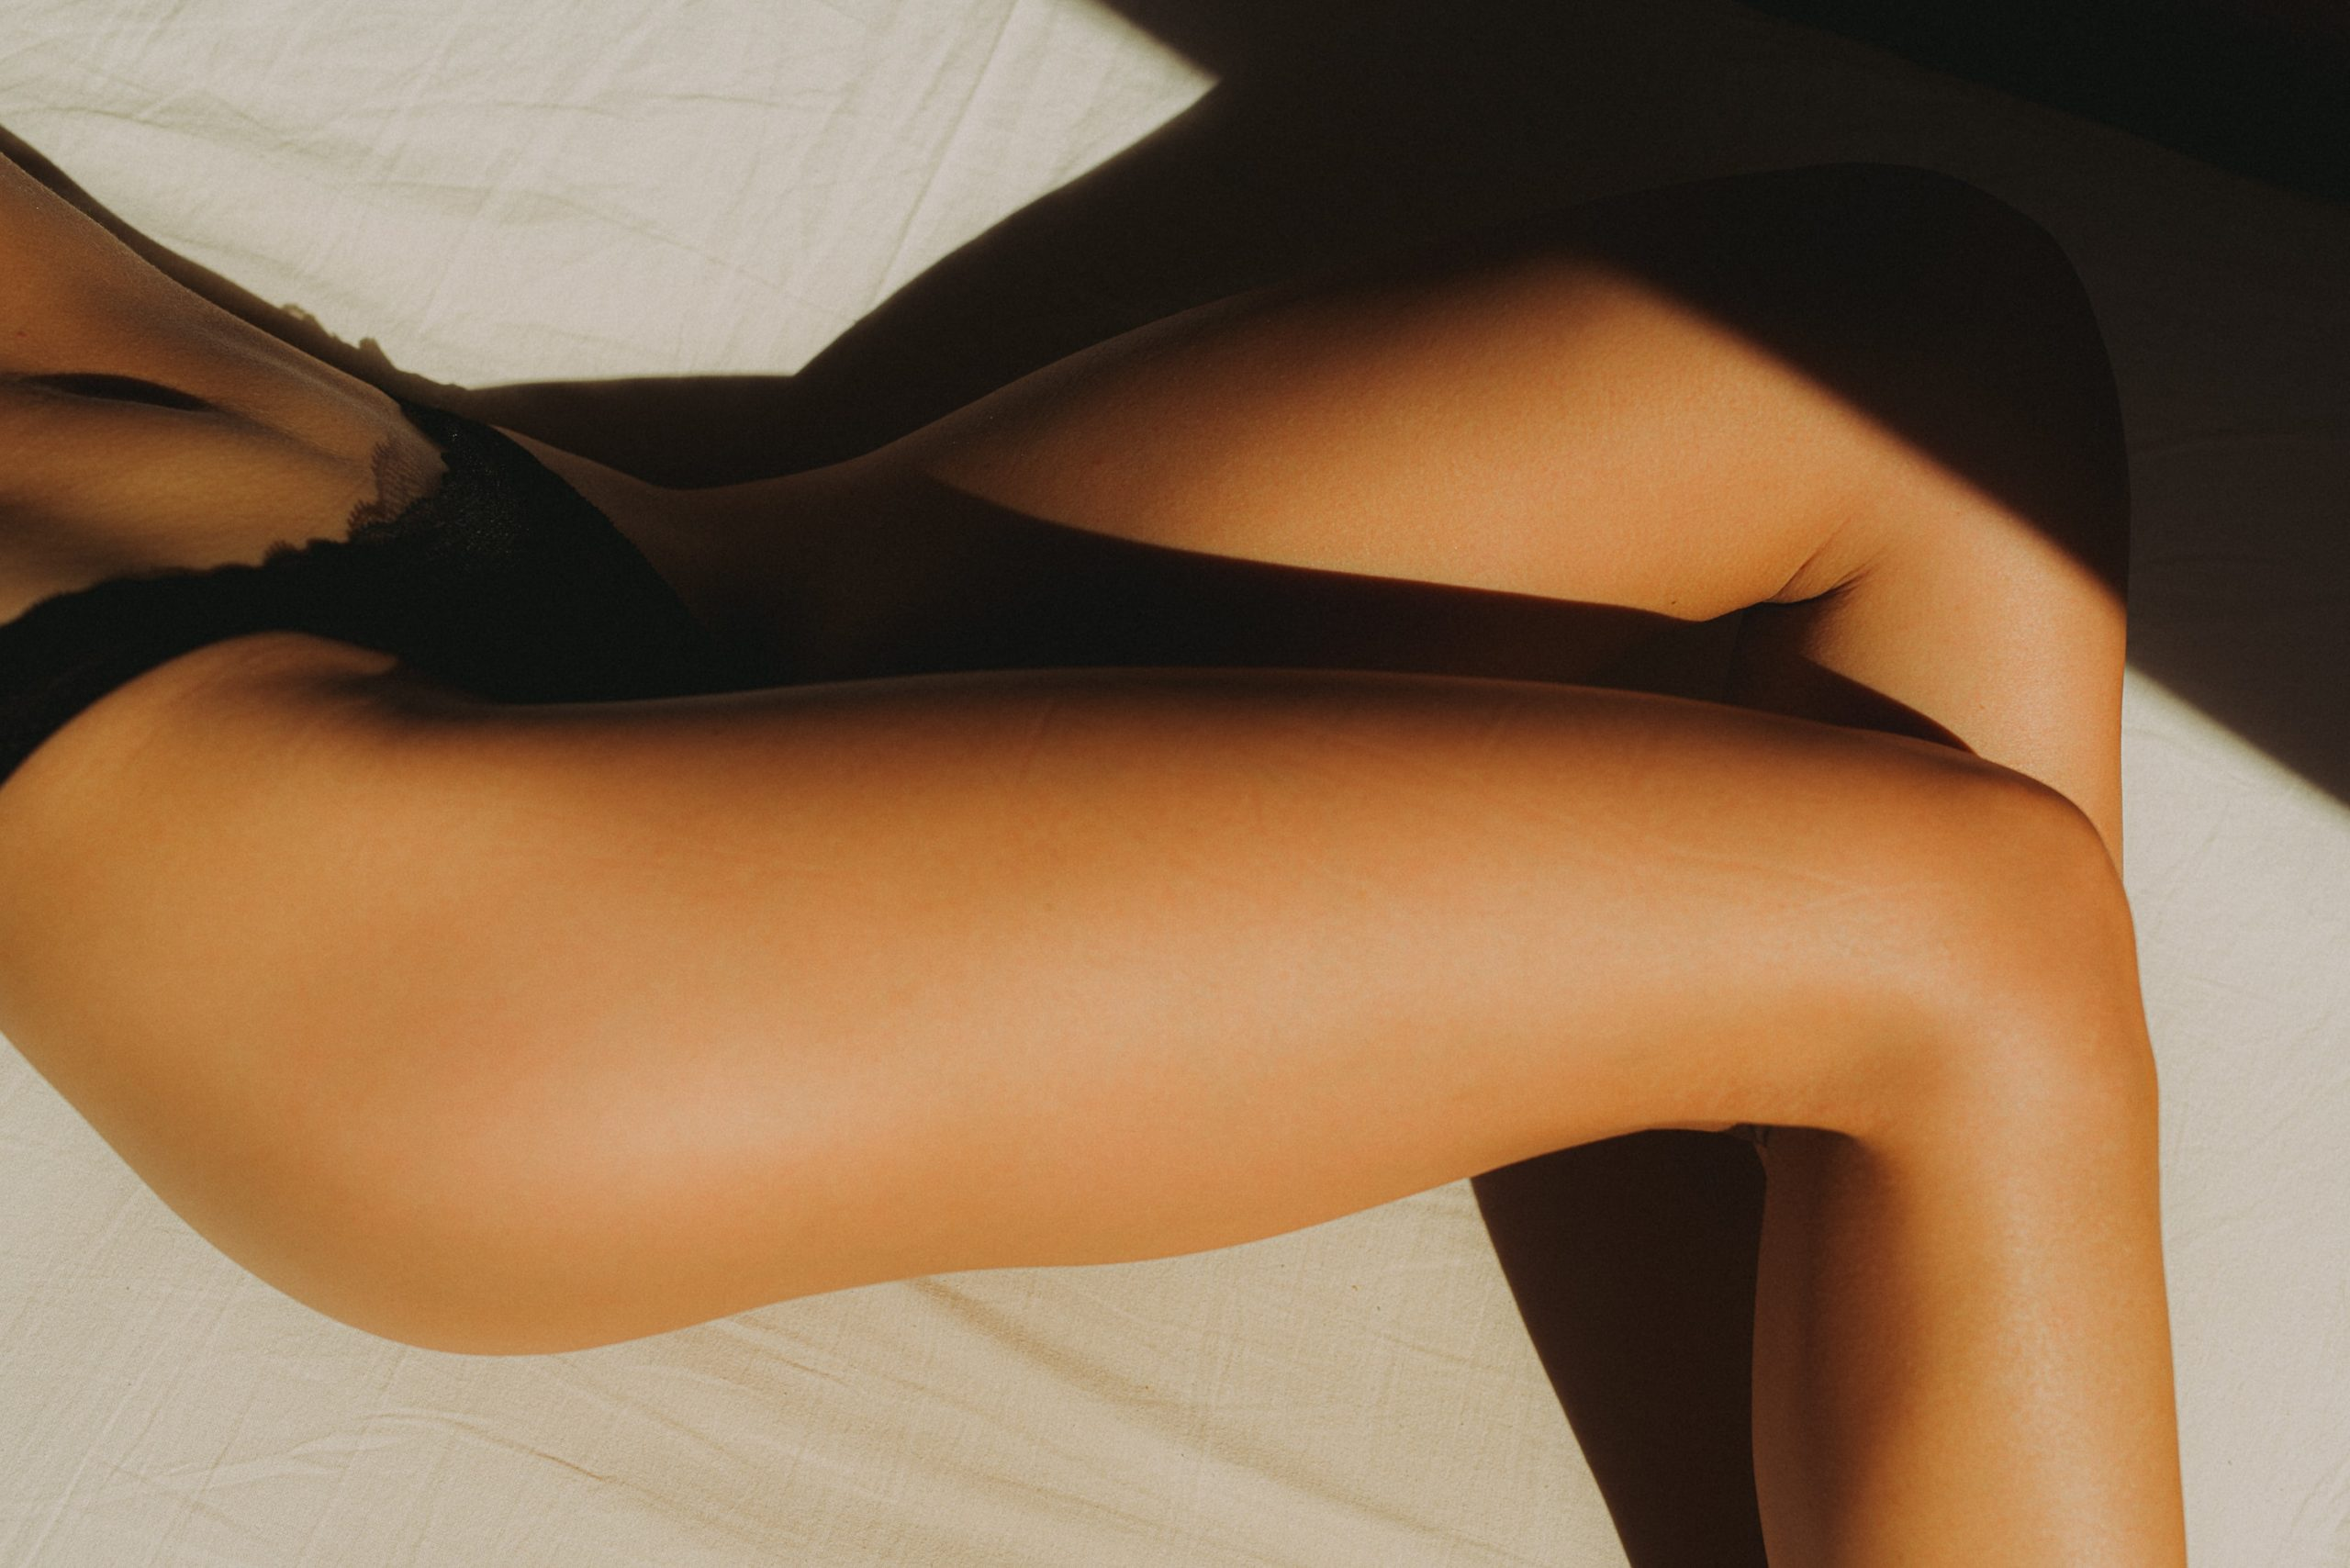 Tanned girl laying on a bed in her underwear